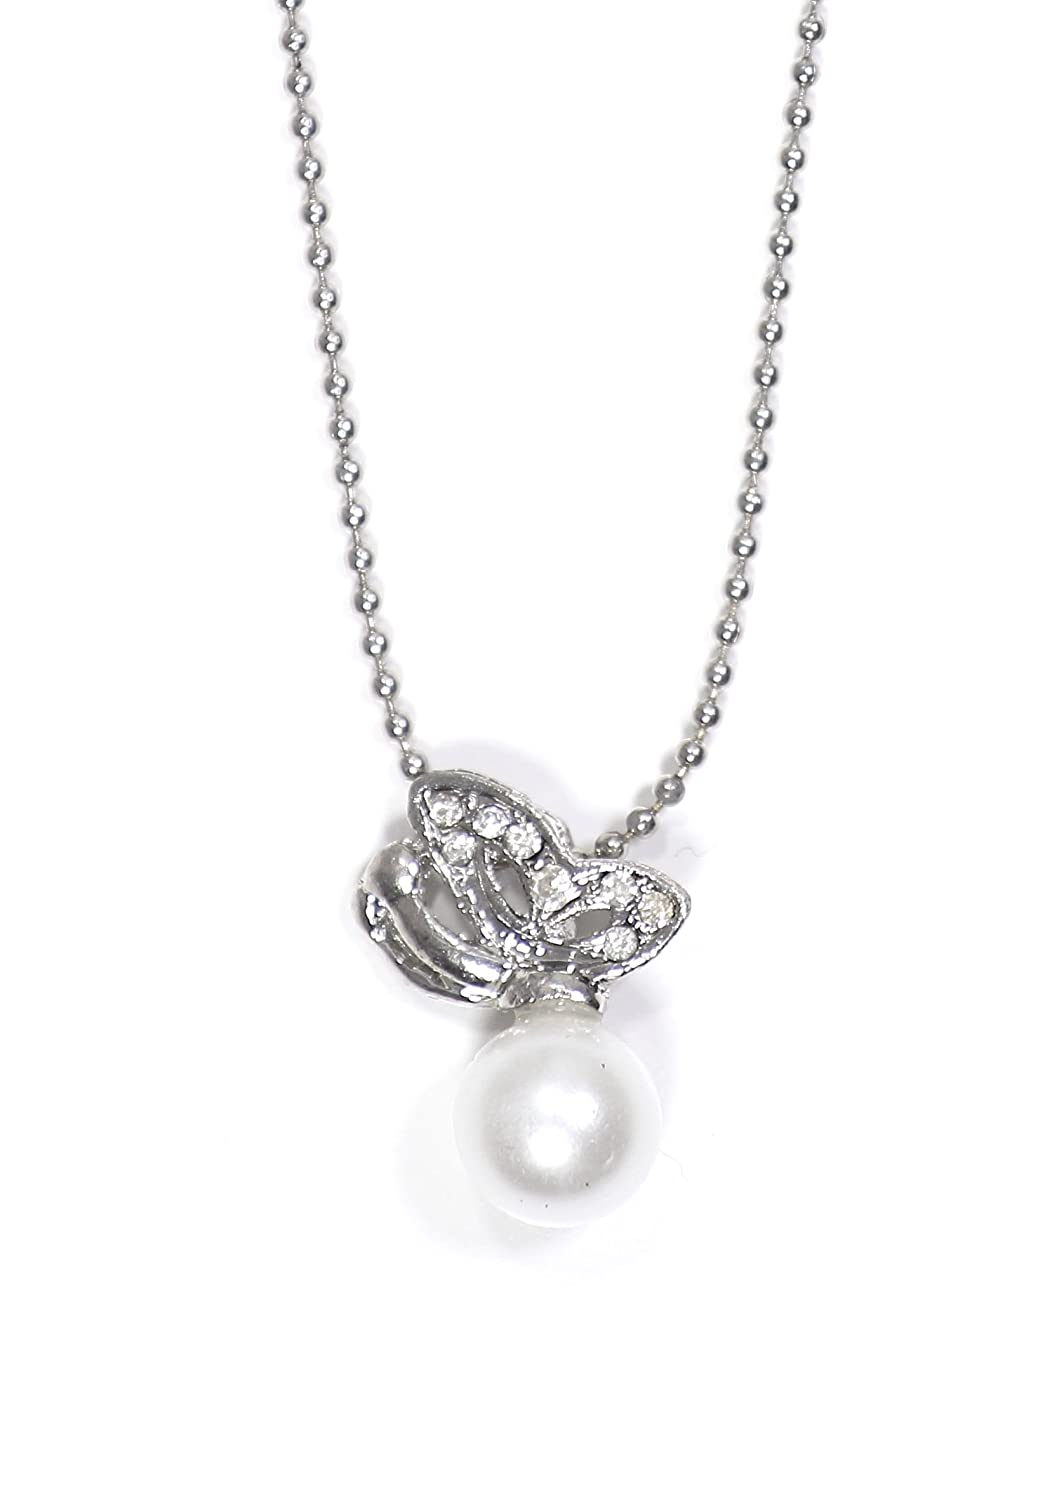 Magic Metal Crystal Butterfly Necklace Vintage Silver Tone Faux Pearl Charm SN31 Antique Moth Pendant Fashion Jewelry